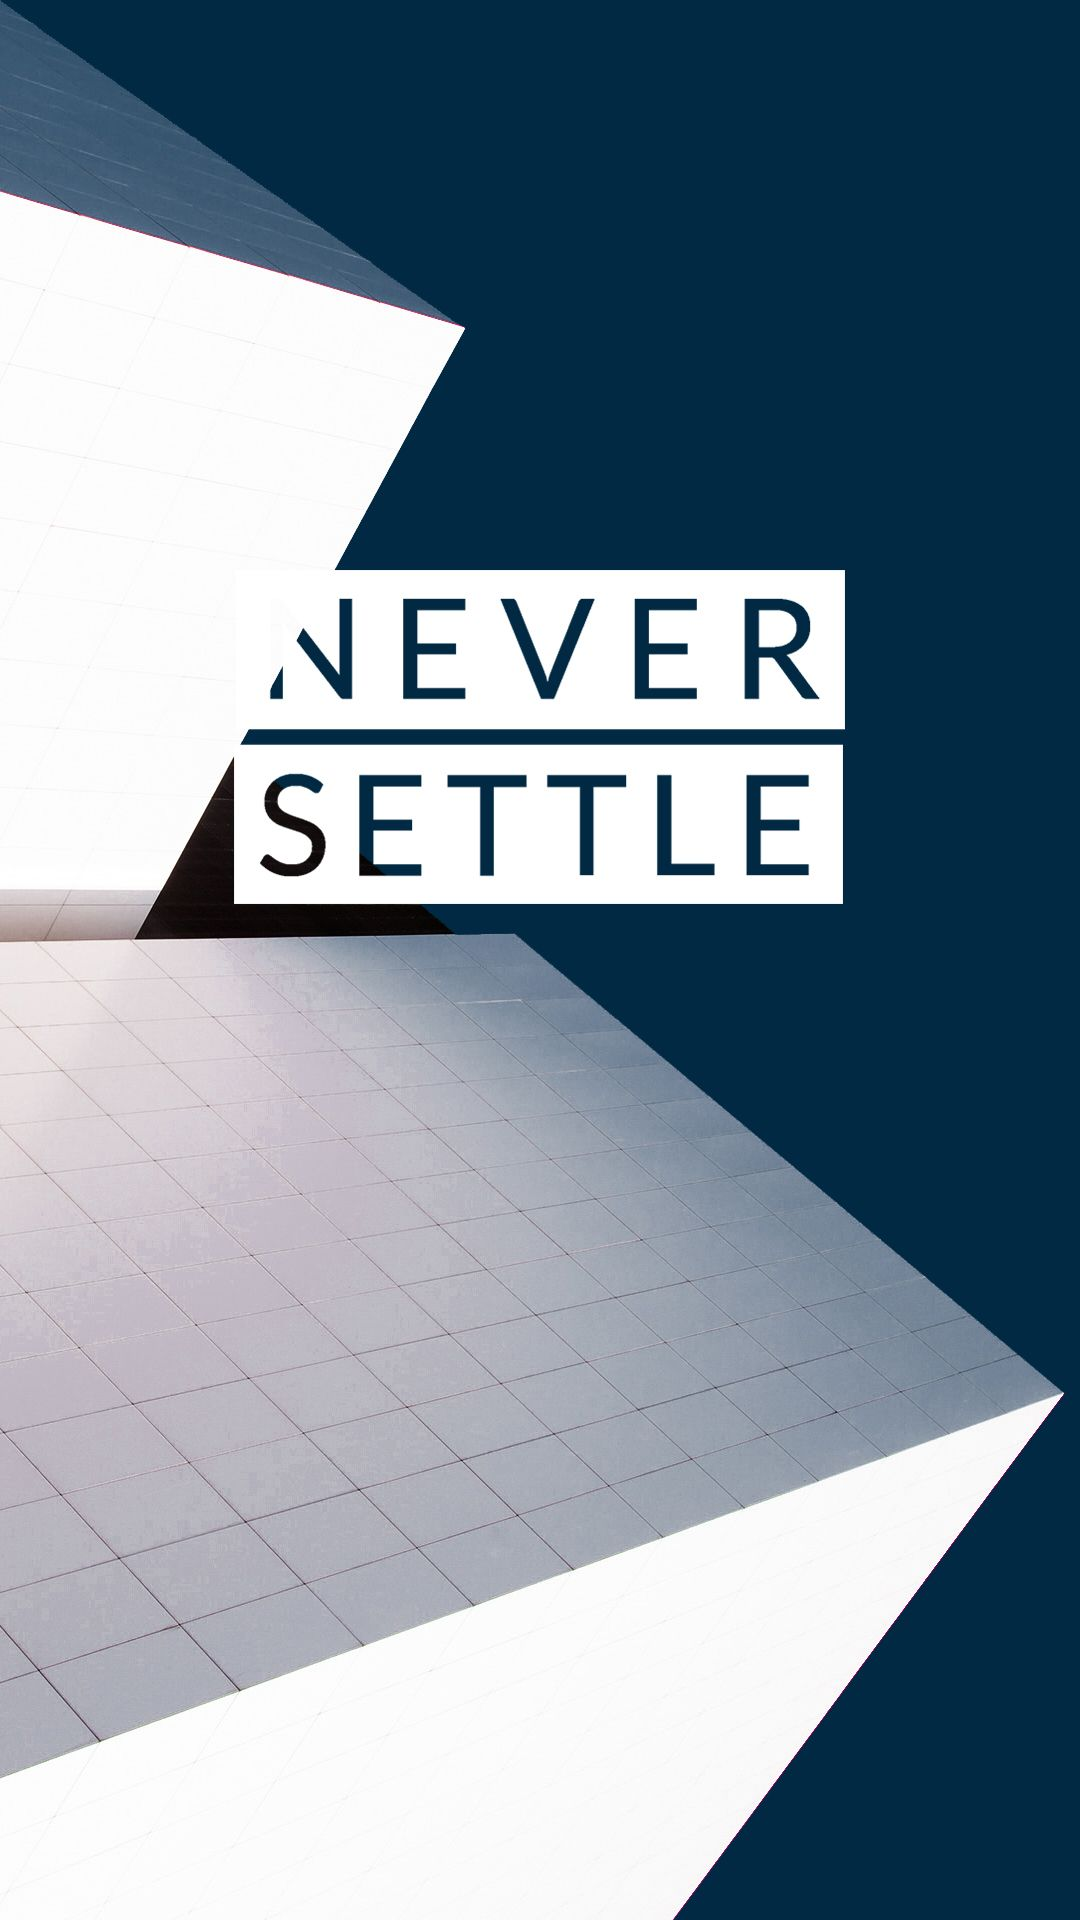 Never Settle Wallpaper Collection Oneplus Community